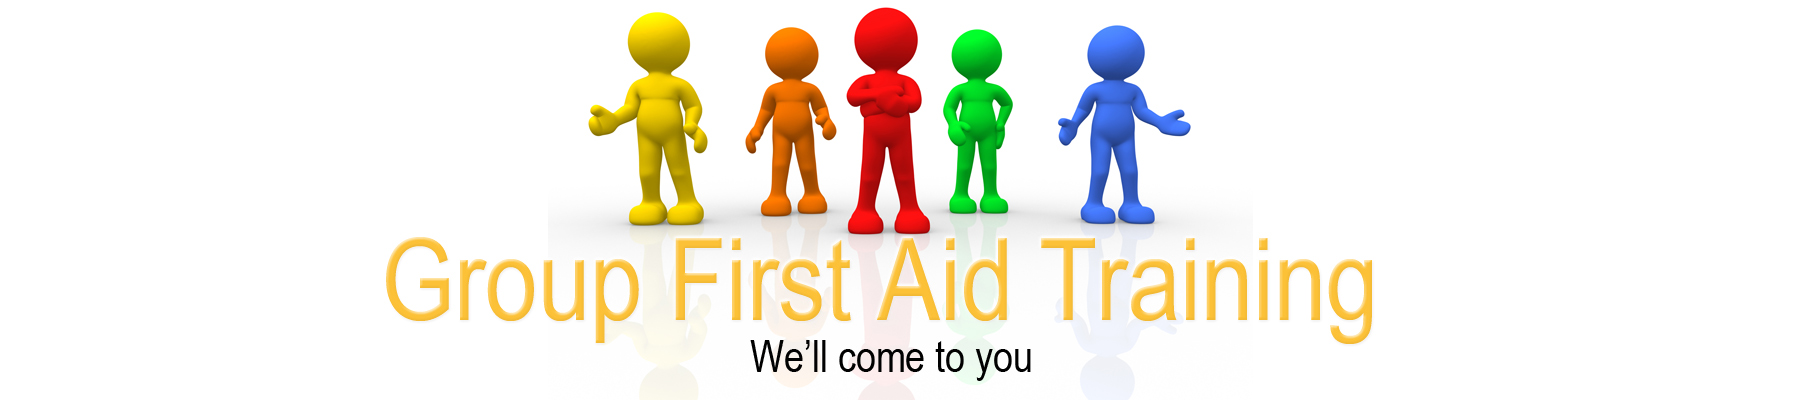 Book Group First Aid Training